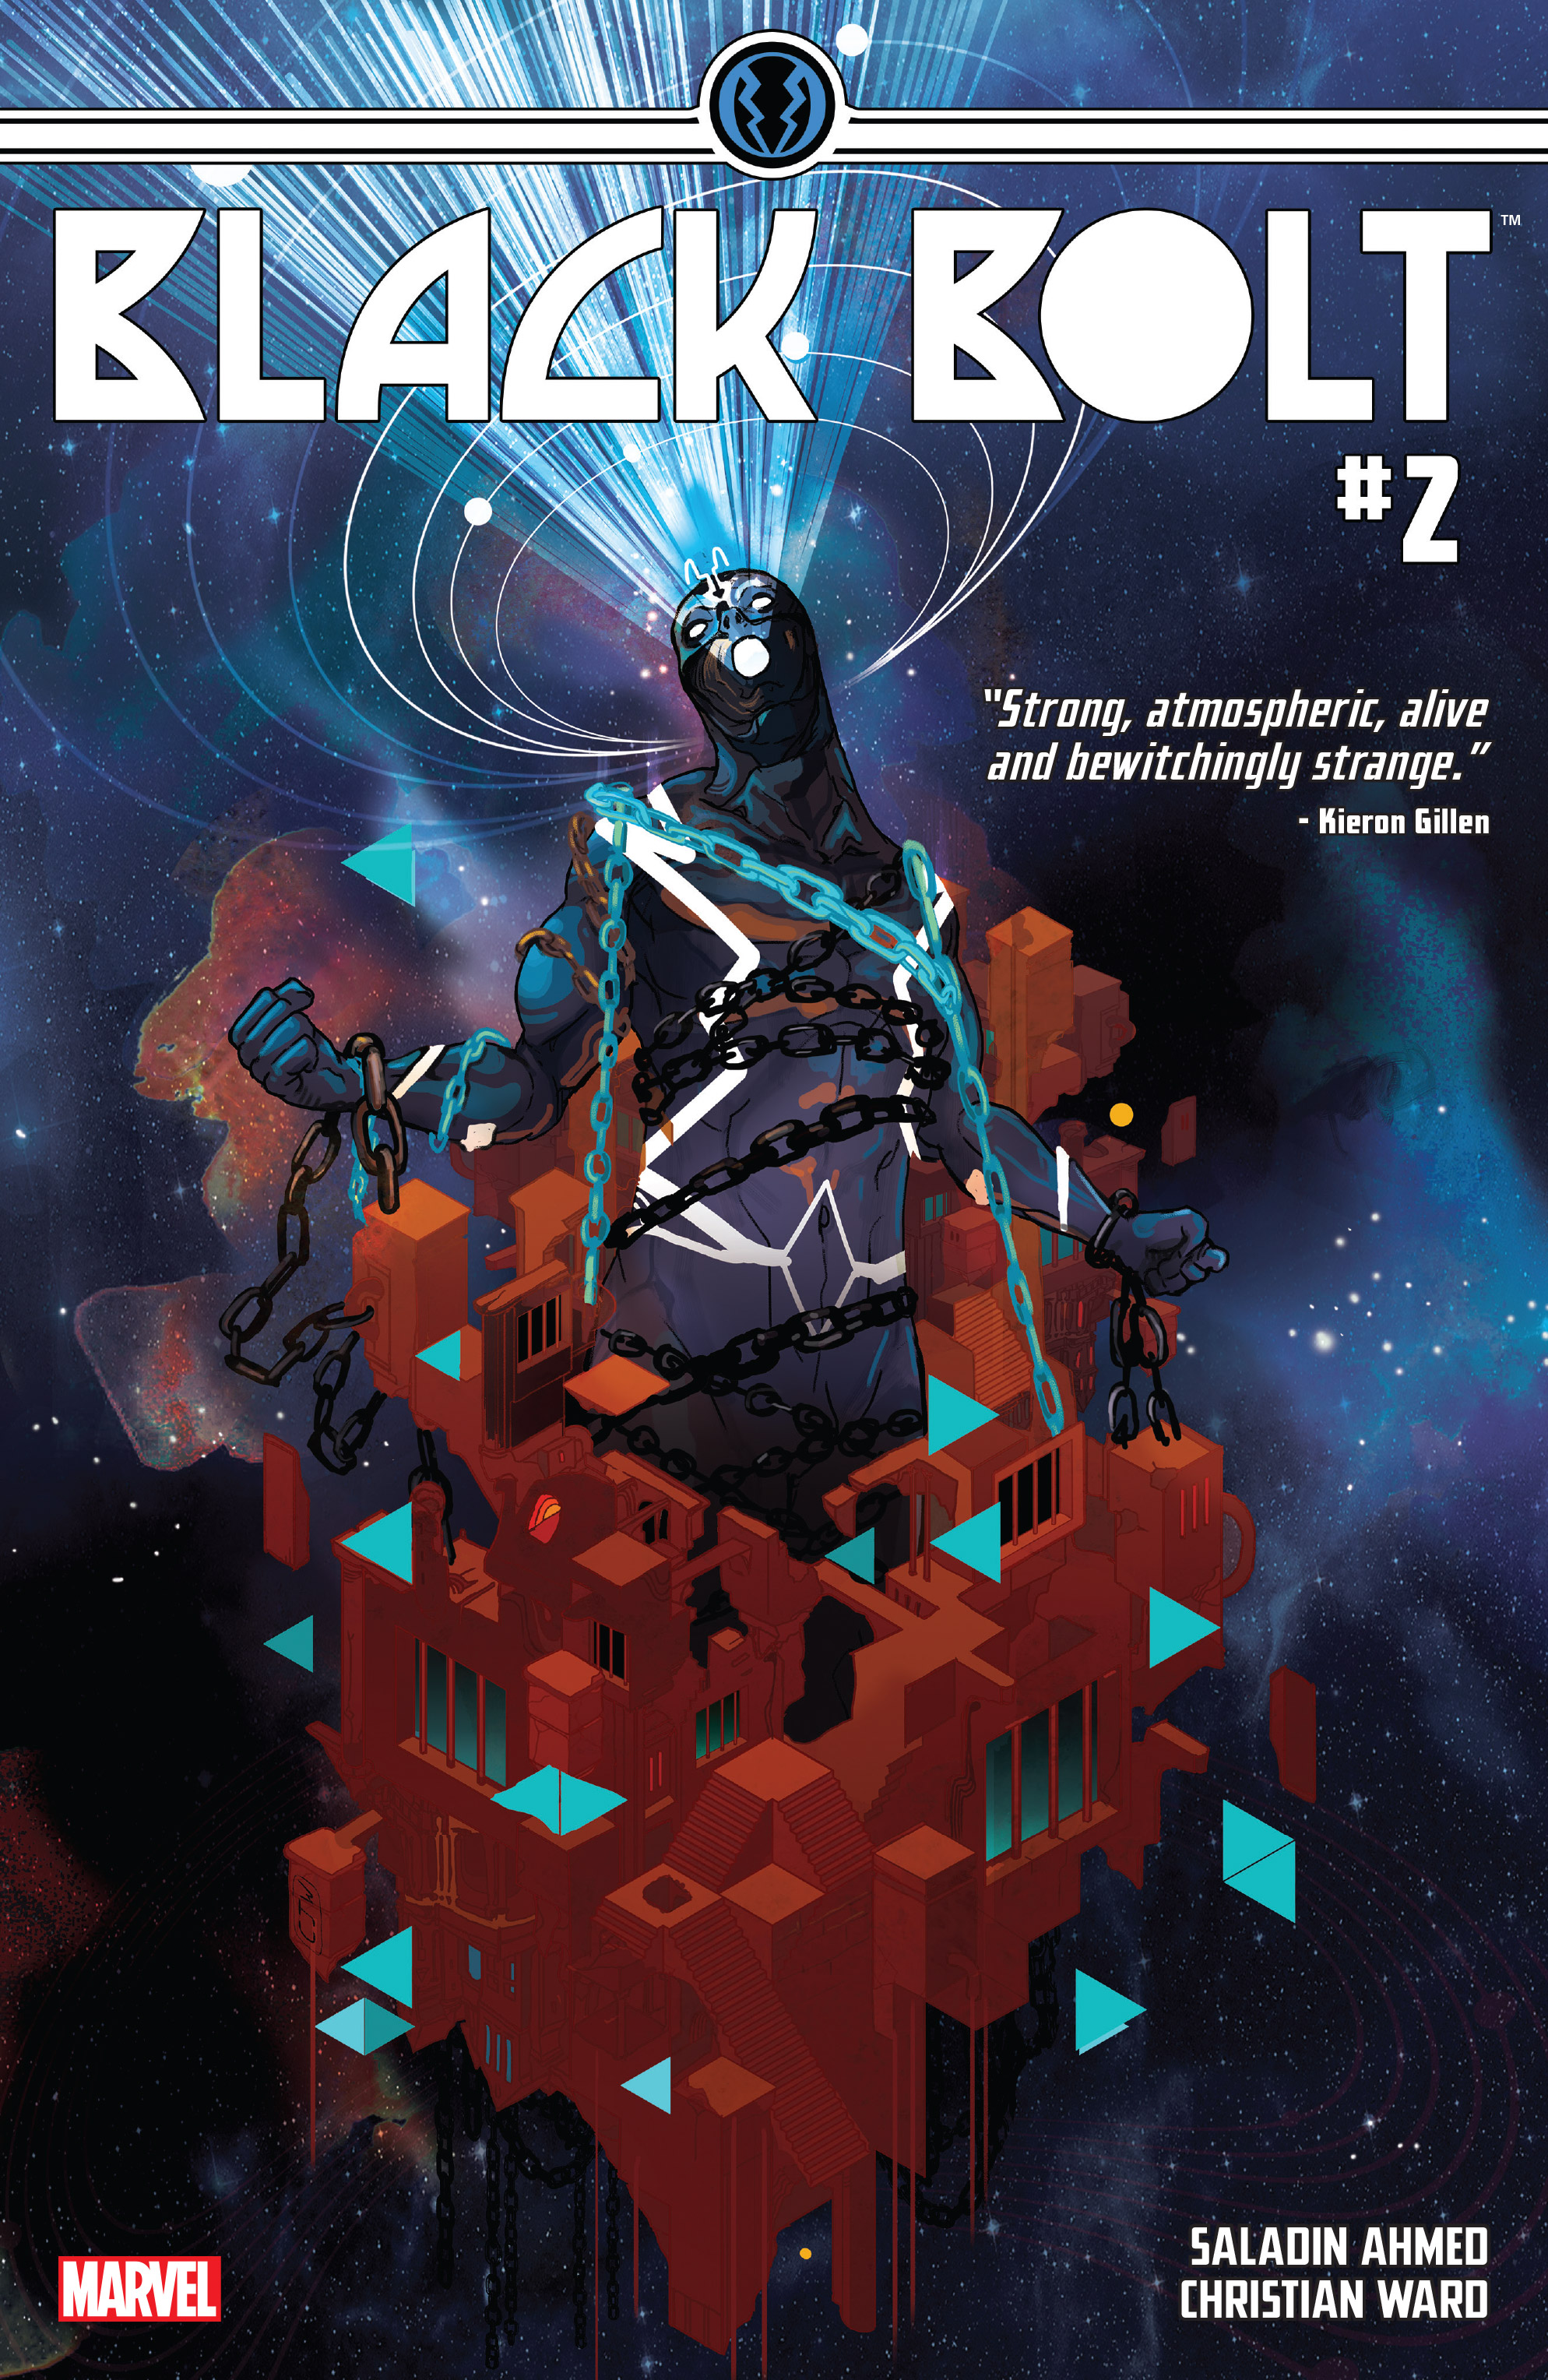 Read online Black Bolt comic -  Issue #2 - 1